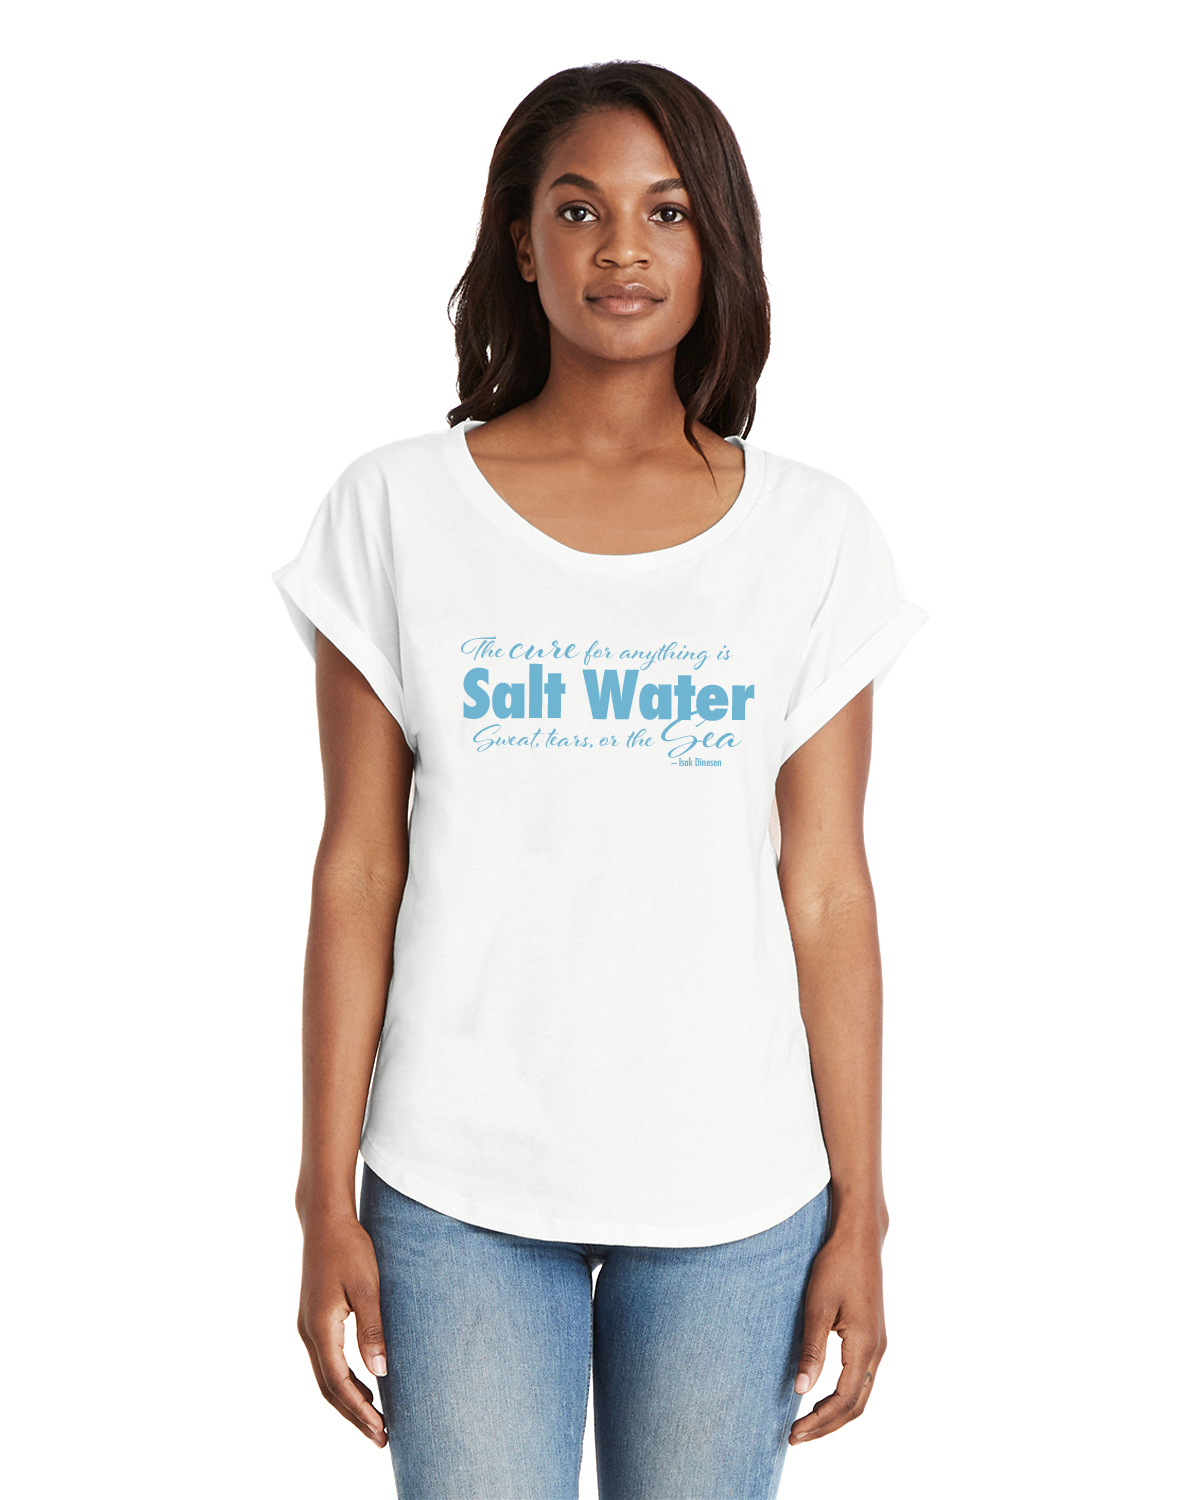 Women's Dolman Sleeve Salt Water QuoteT-shirt (White)